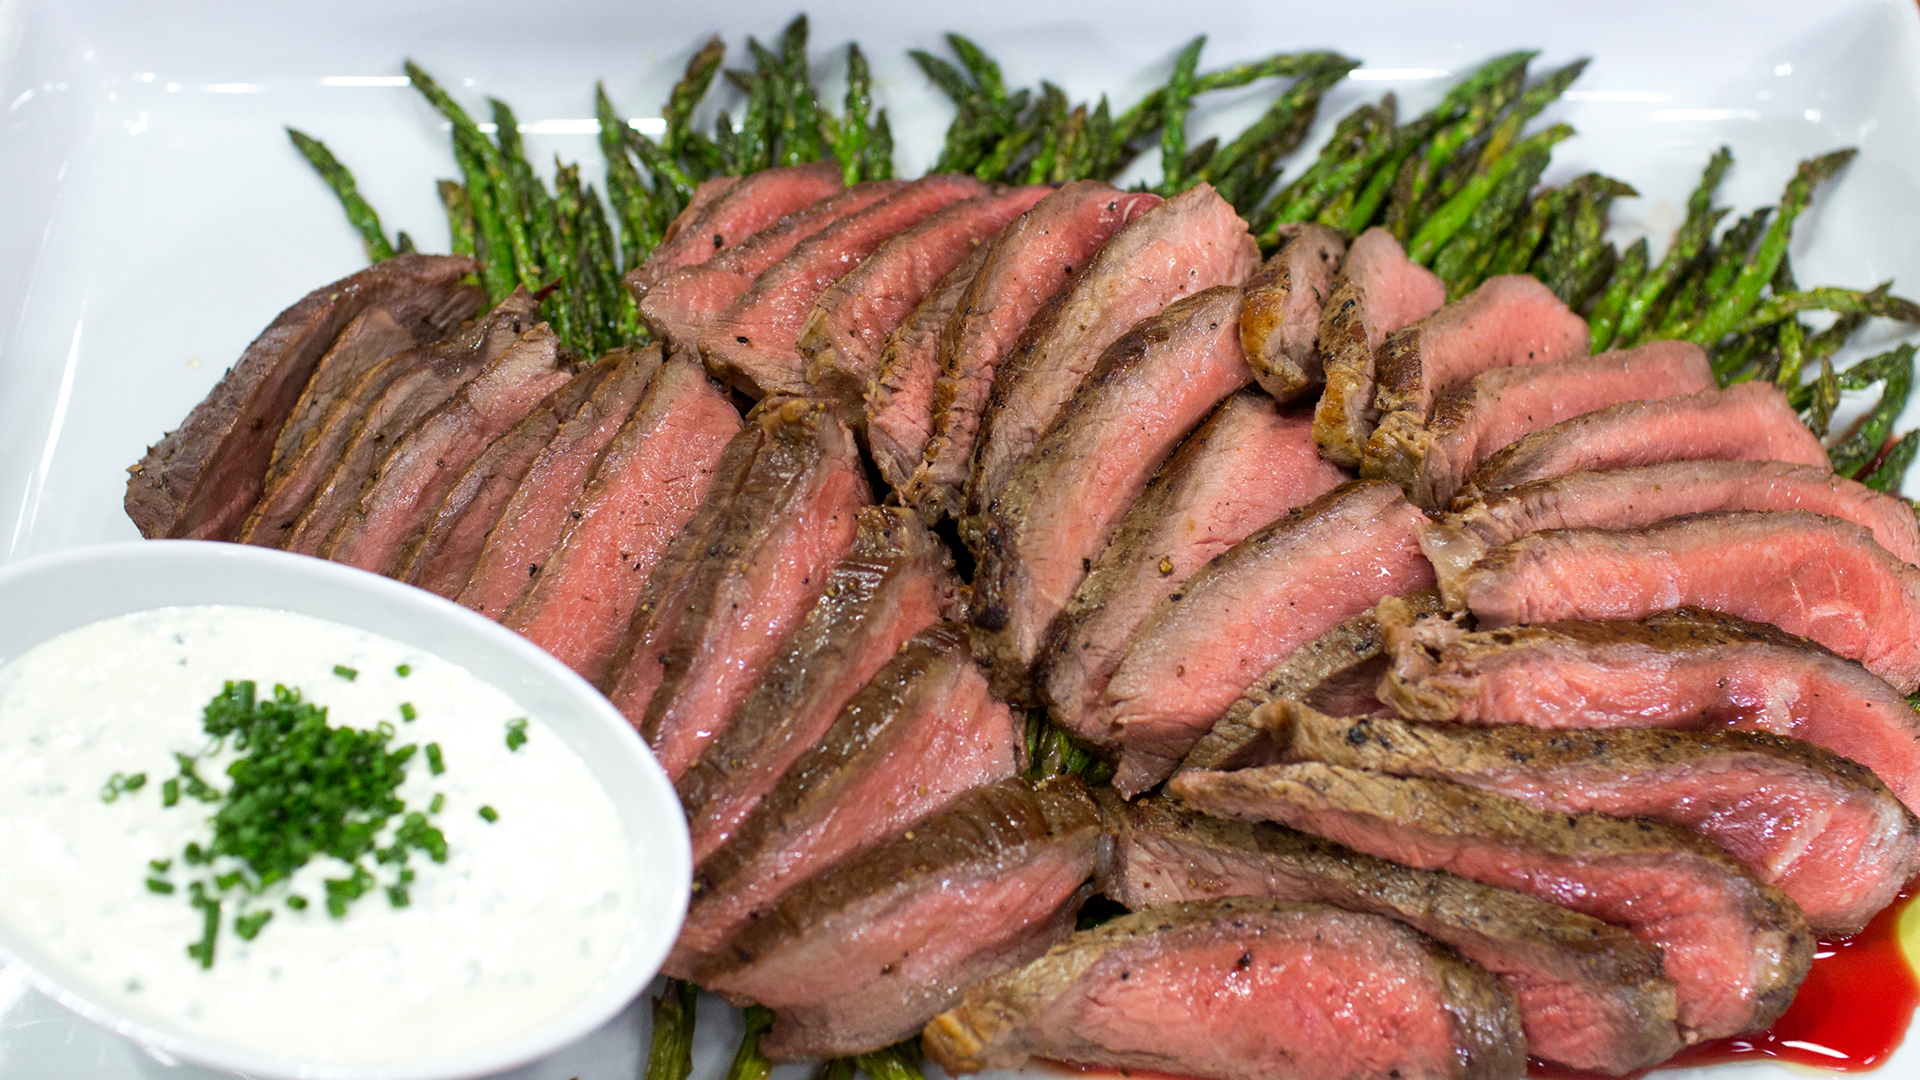 Broiled Steak and Asparagus with Feta Cream Sauce